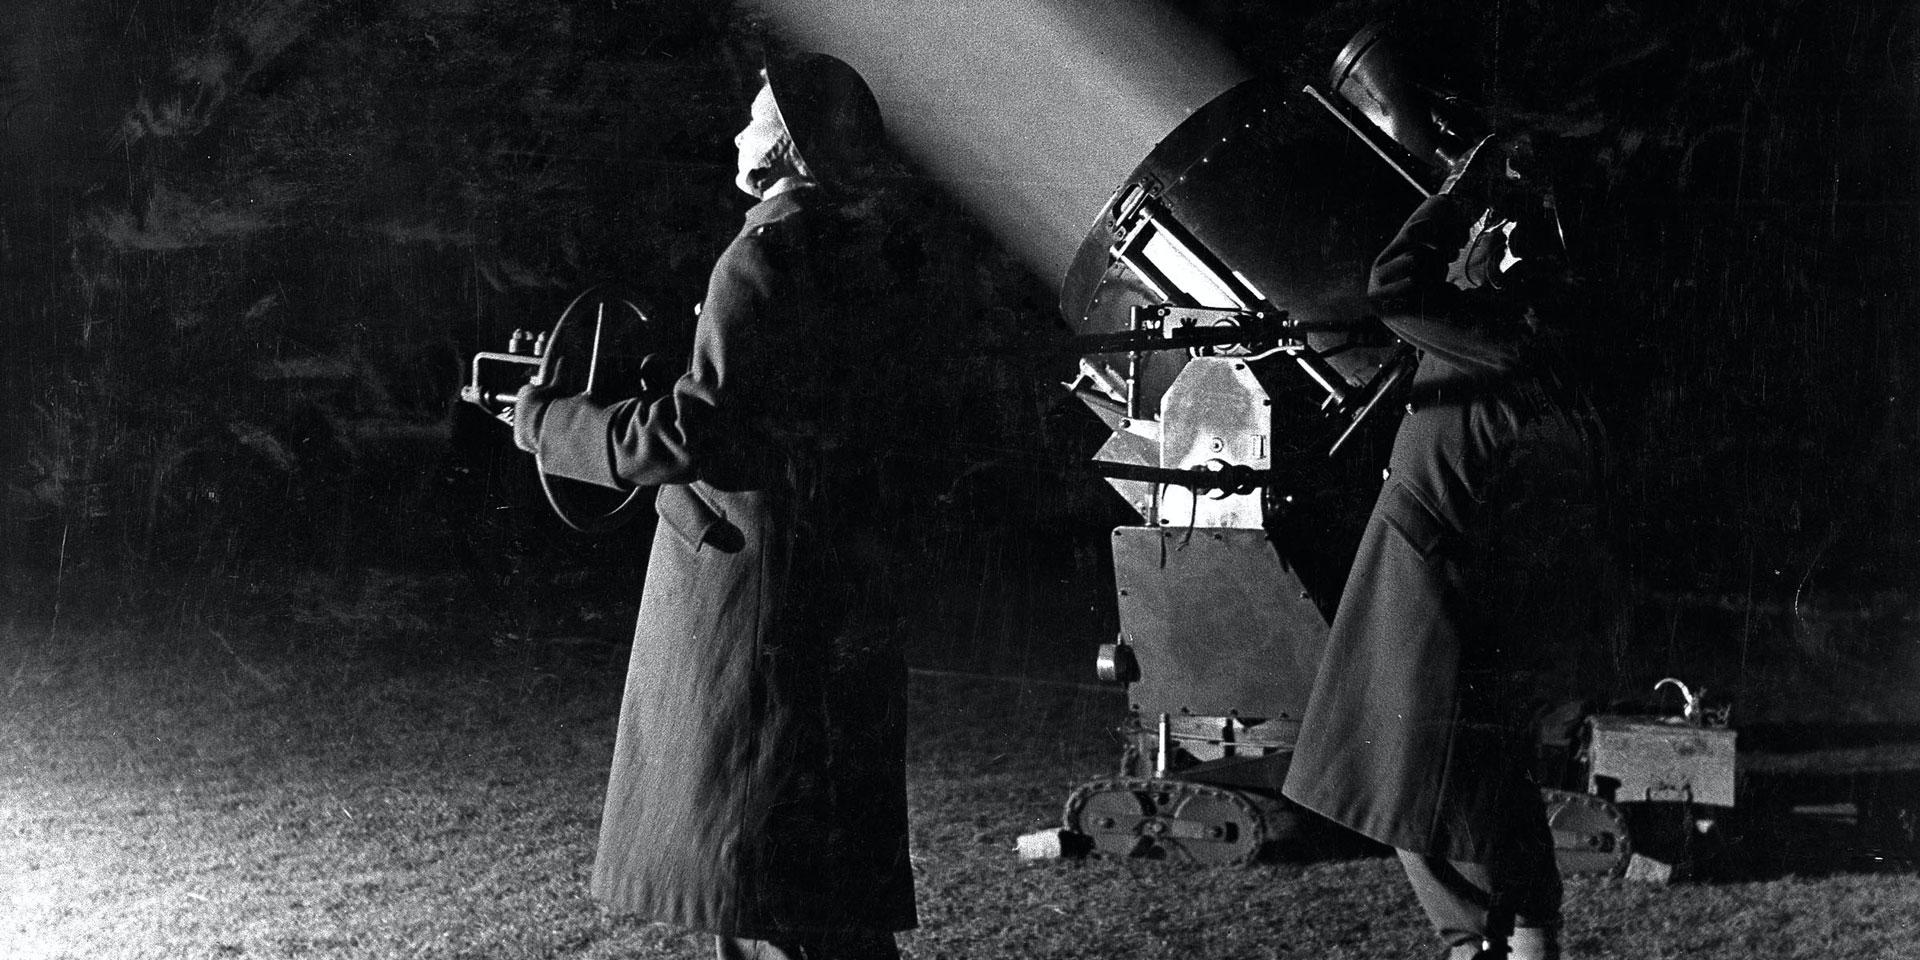 Auxiliary Territorial Service personnel operating an anti-aircraft searchlight, c1940